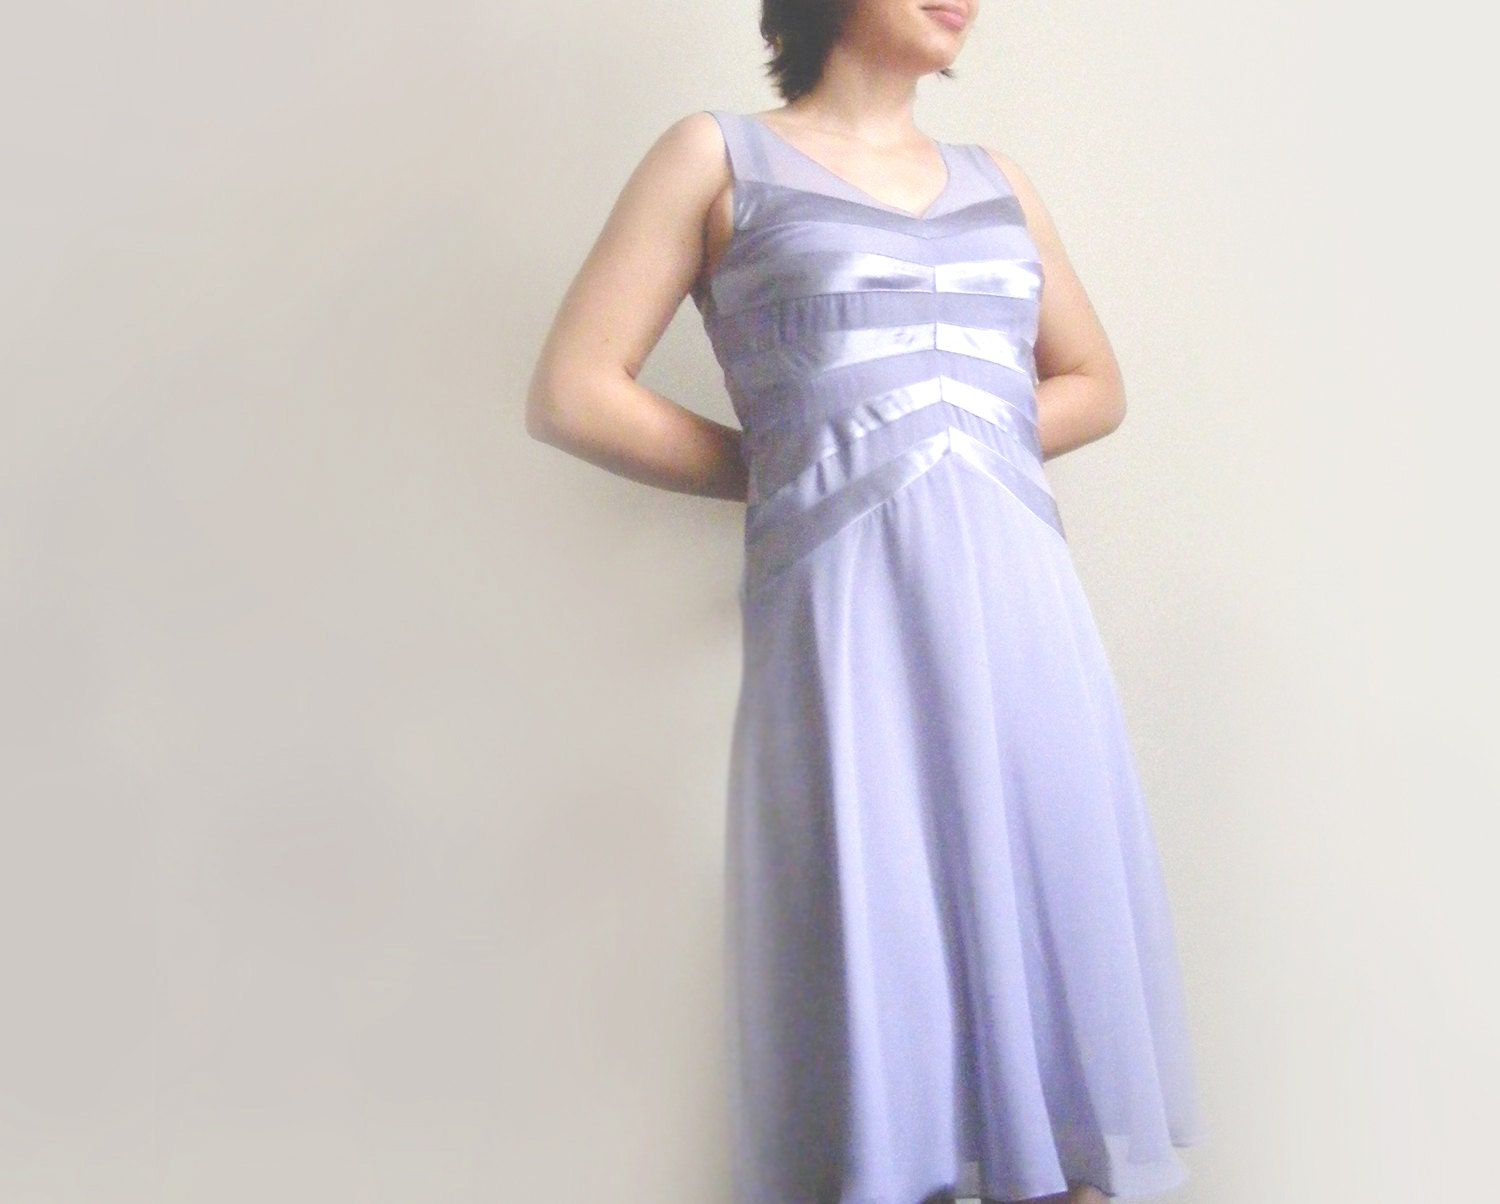 Aerial lilac dress, striped sheer dress, prom, light purple dress - plot